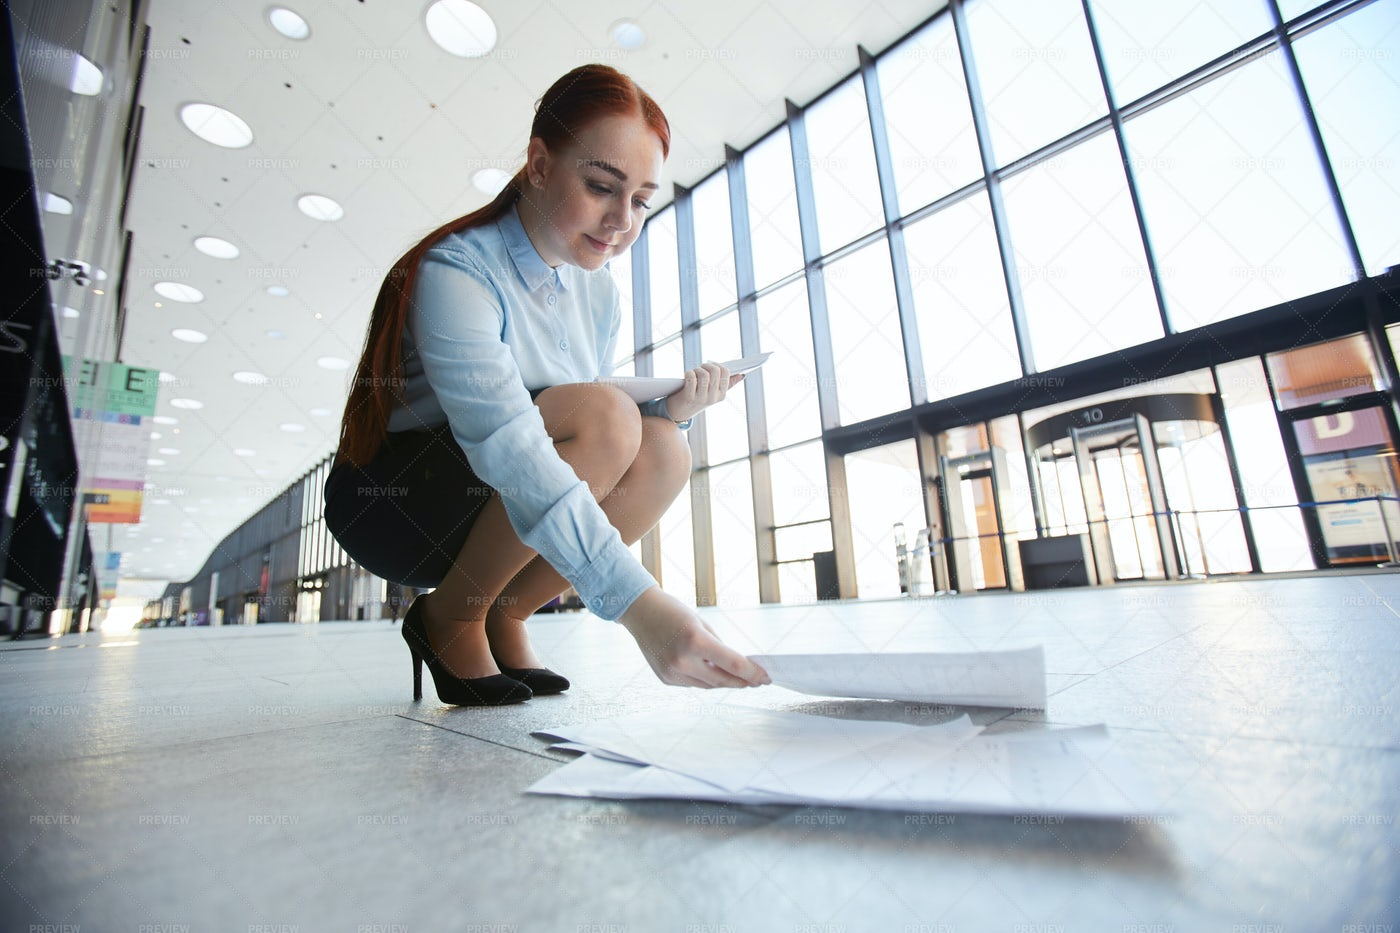 Businesswoman Picking Up Papers: Stock Photos